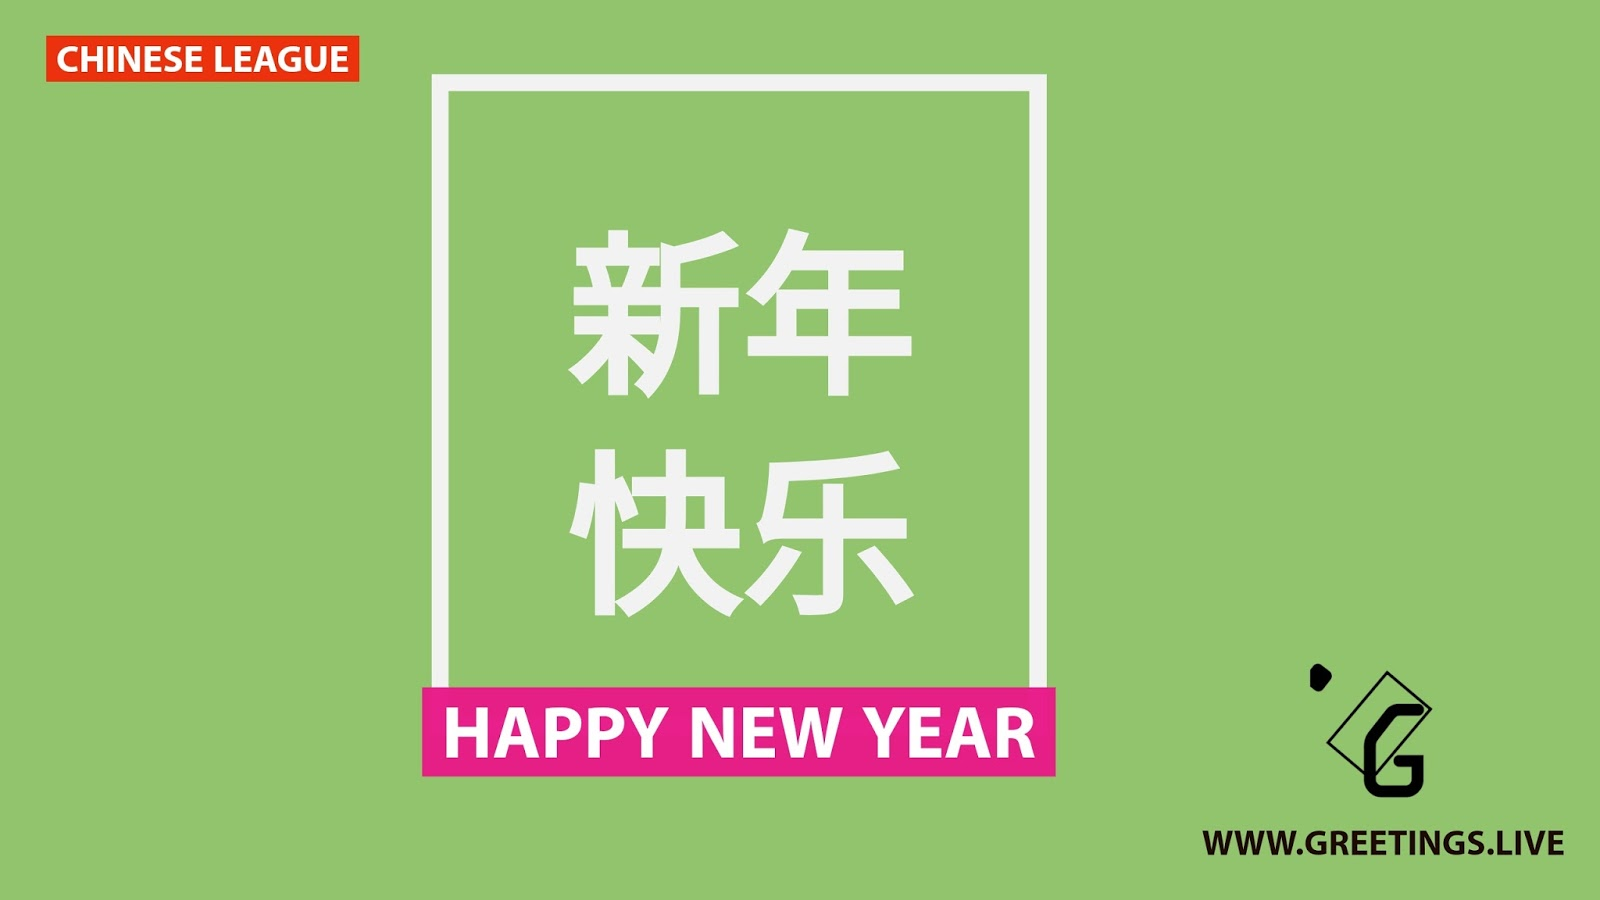 2018 New Year Wishes Greetings Happy New Year In Chinese Language